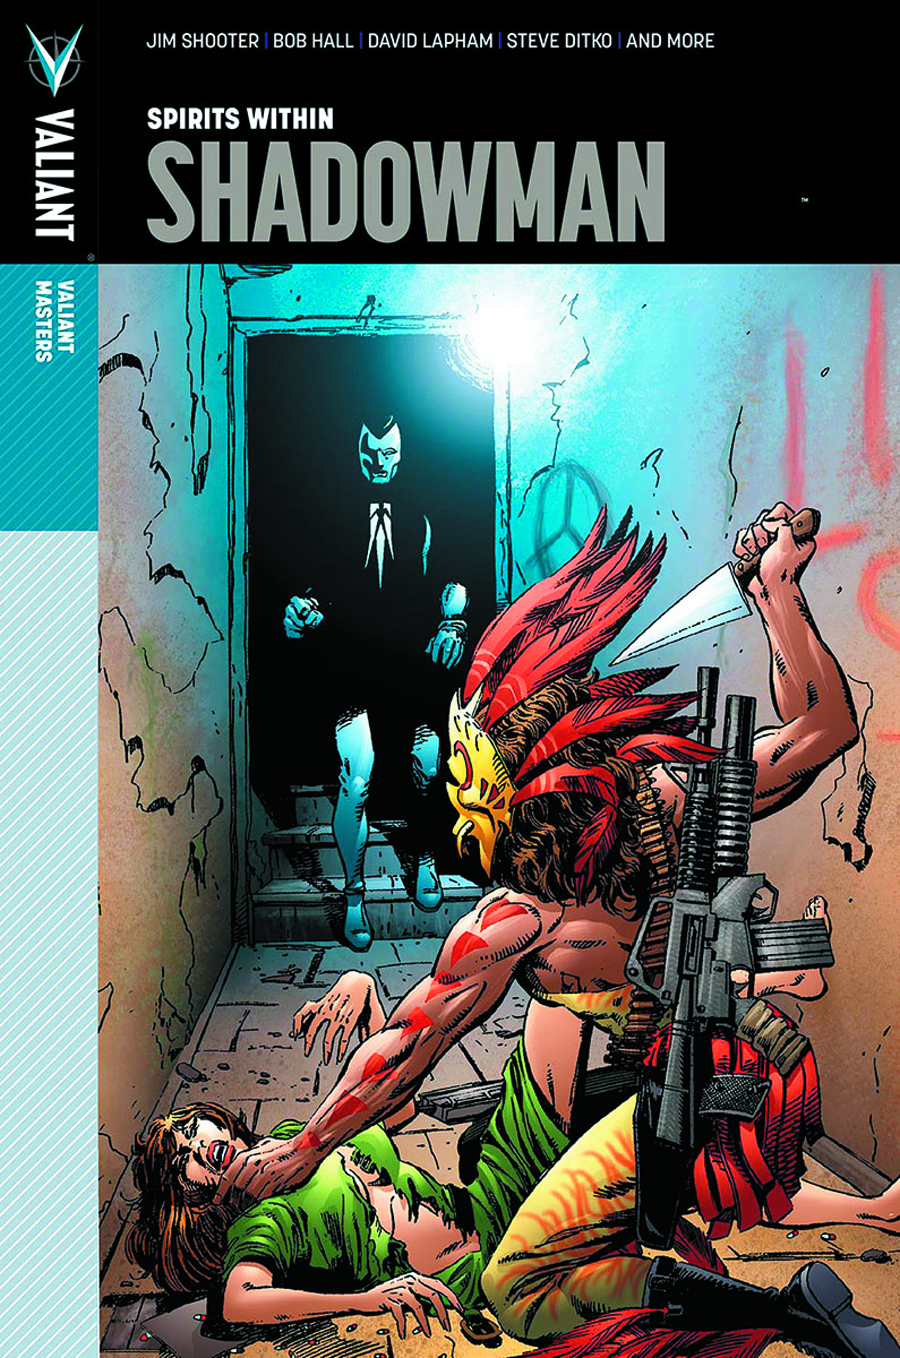 VALIANT MASTERS SHADOWMAN HC VOL 01 SPIRITS WITHIN